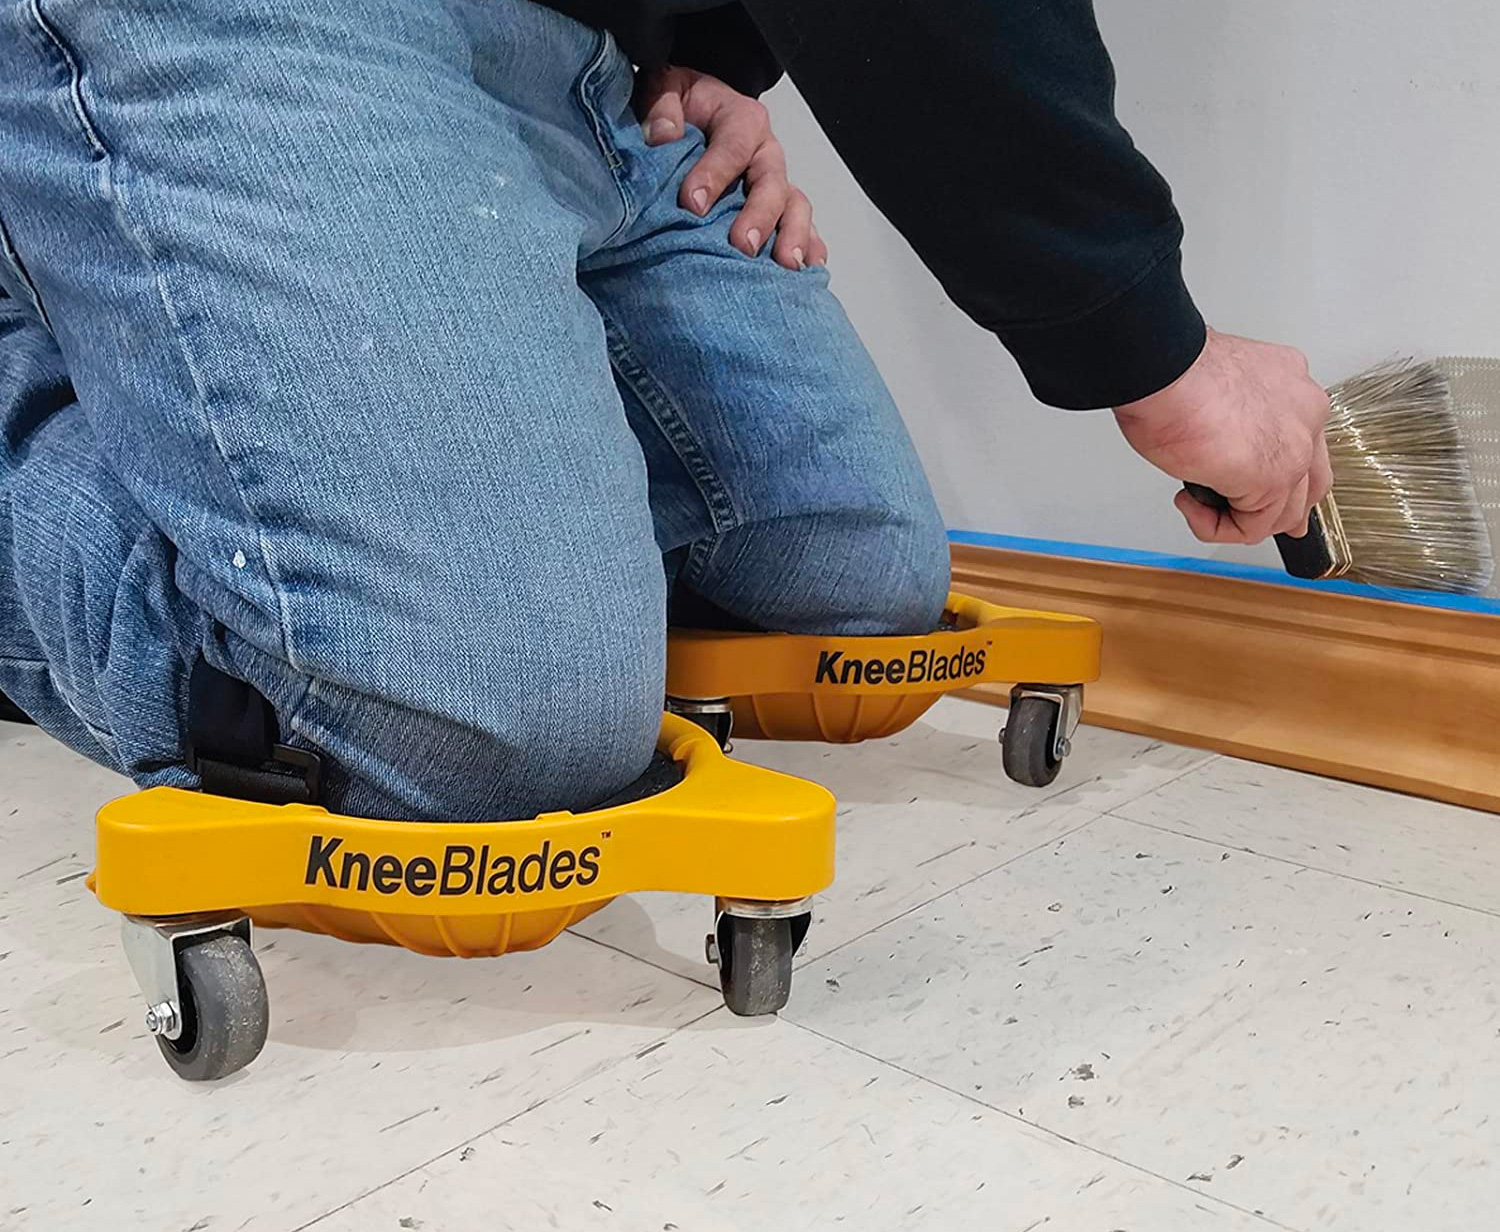 With Knee Blades, You Can Wheel While You Work at werd.com